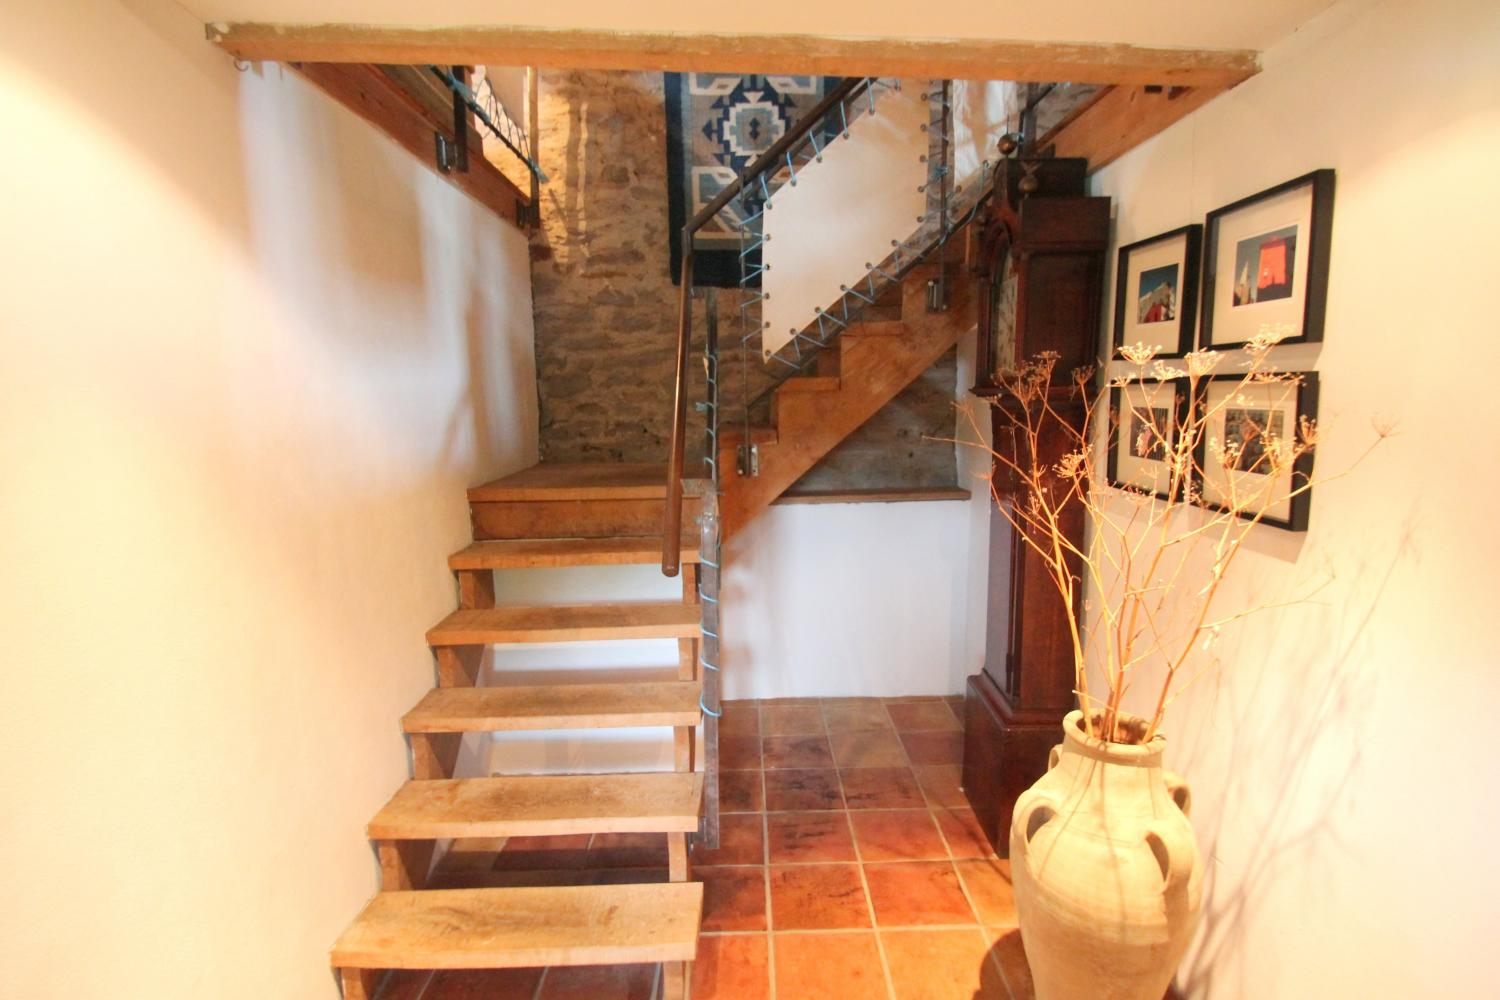 Staircase from Ground Floor